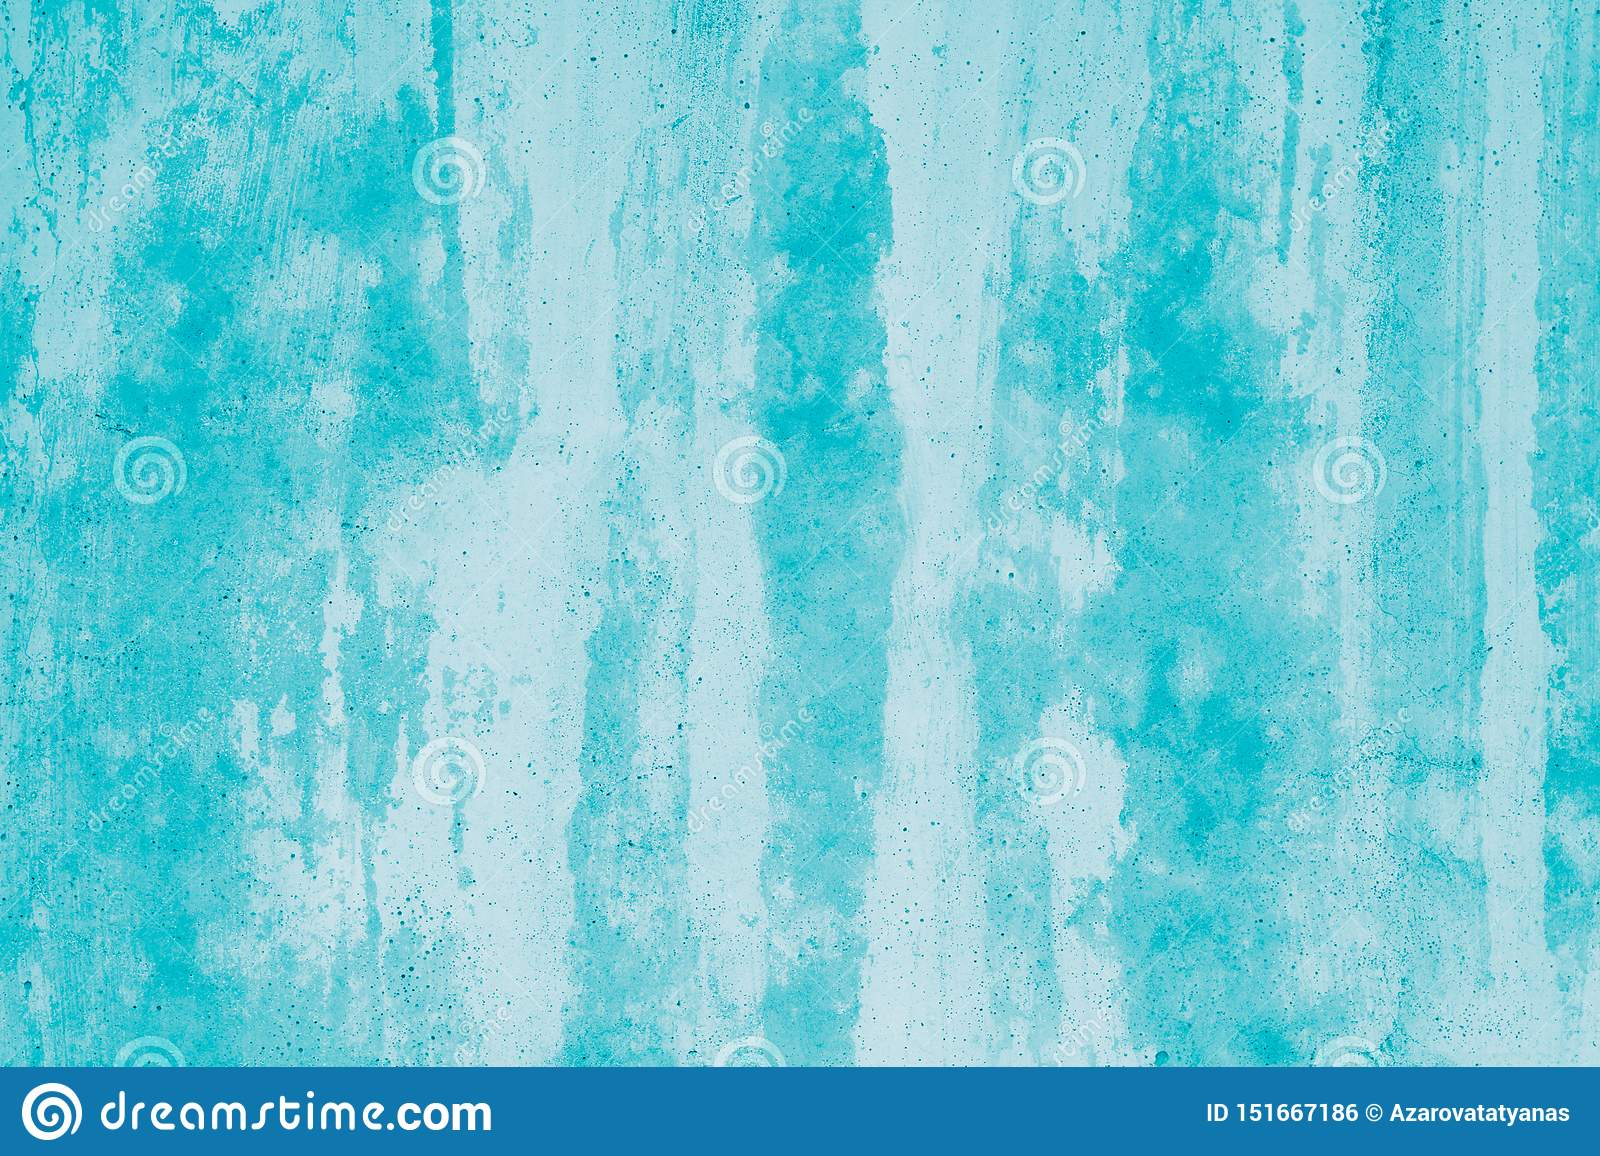 Turquoise abstract mockup. Green background with paint stains. Modern art. Blots on canvas, backdrop. Illustration. Pattern of wat